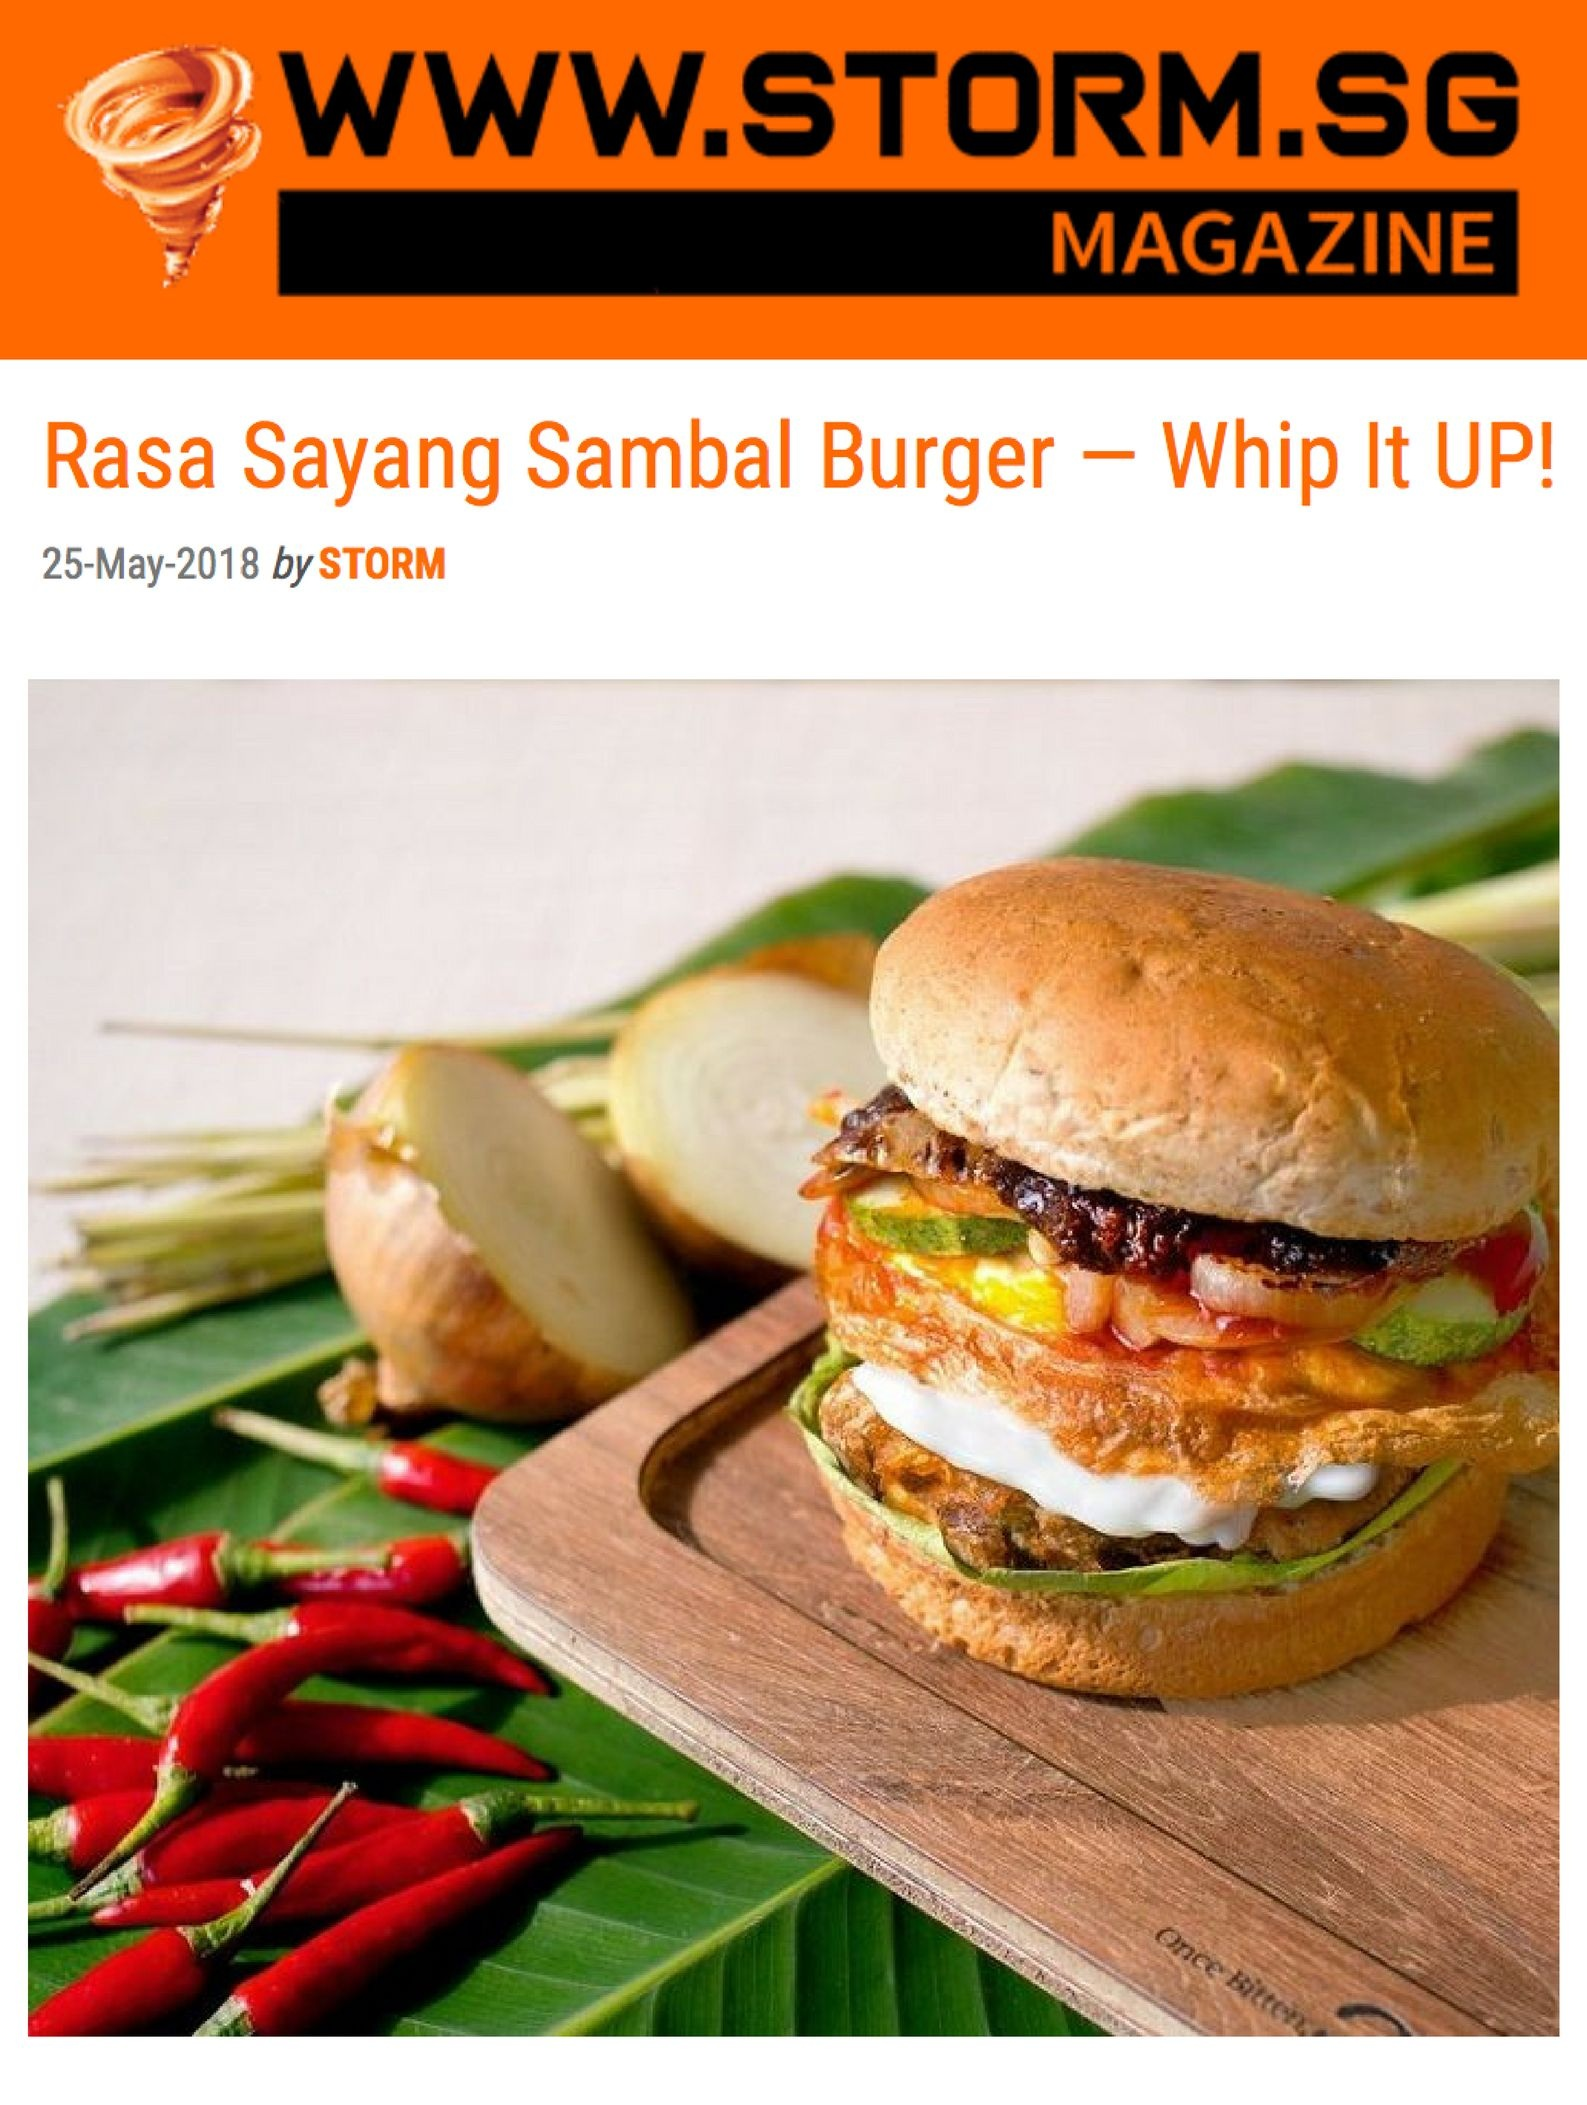 STORM+Magazine_+Rasa+Sayang+Sambal+Burger+%E2%80%94+Whip+It+UP%21.jpg